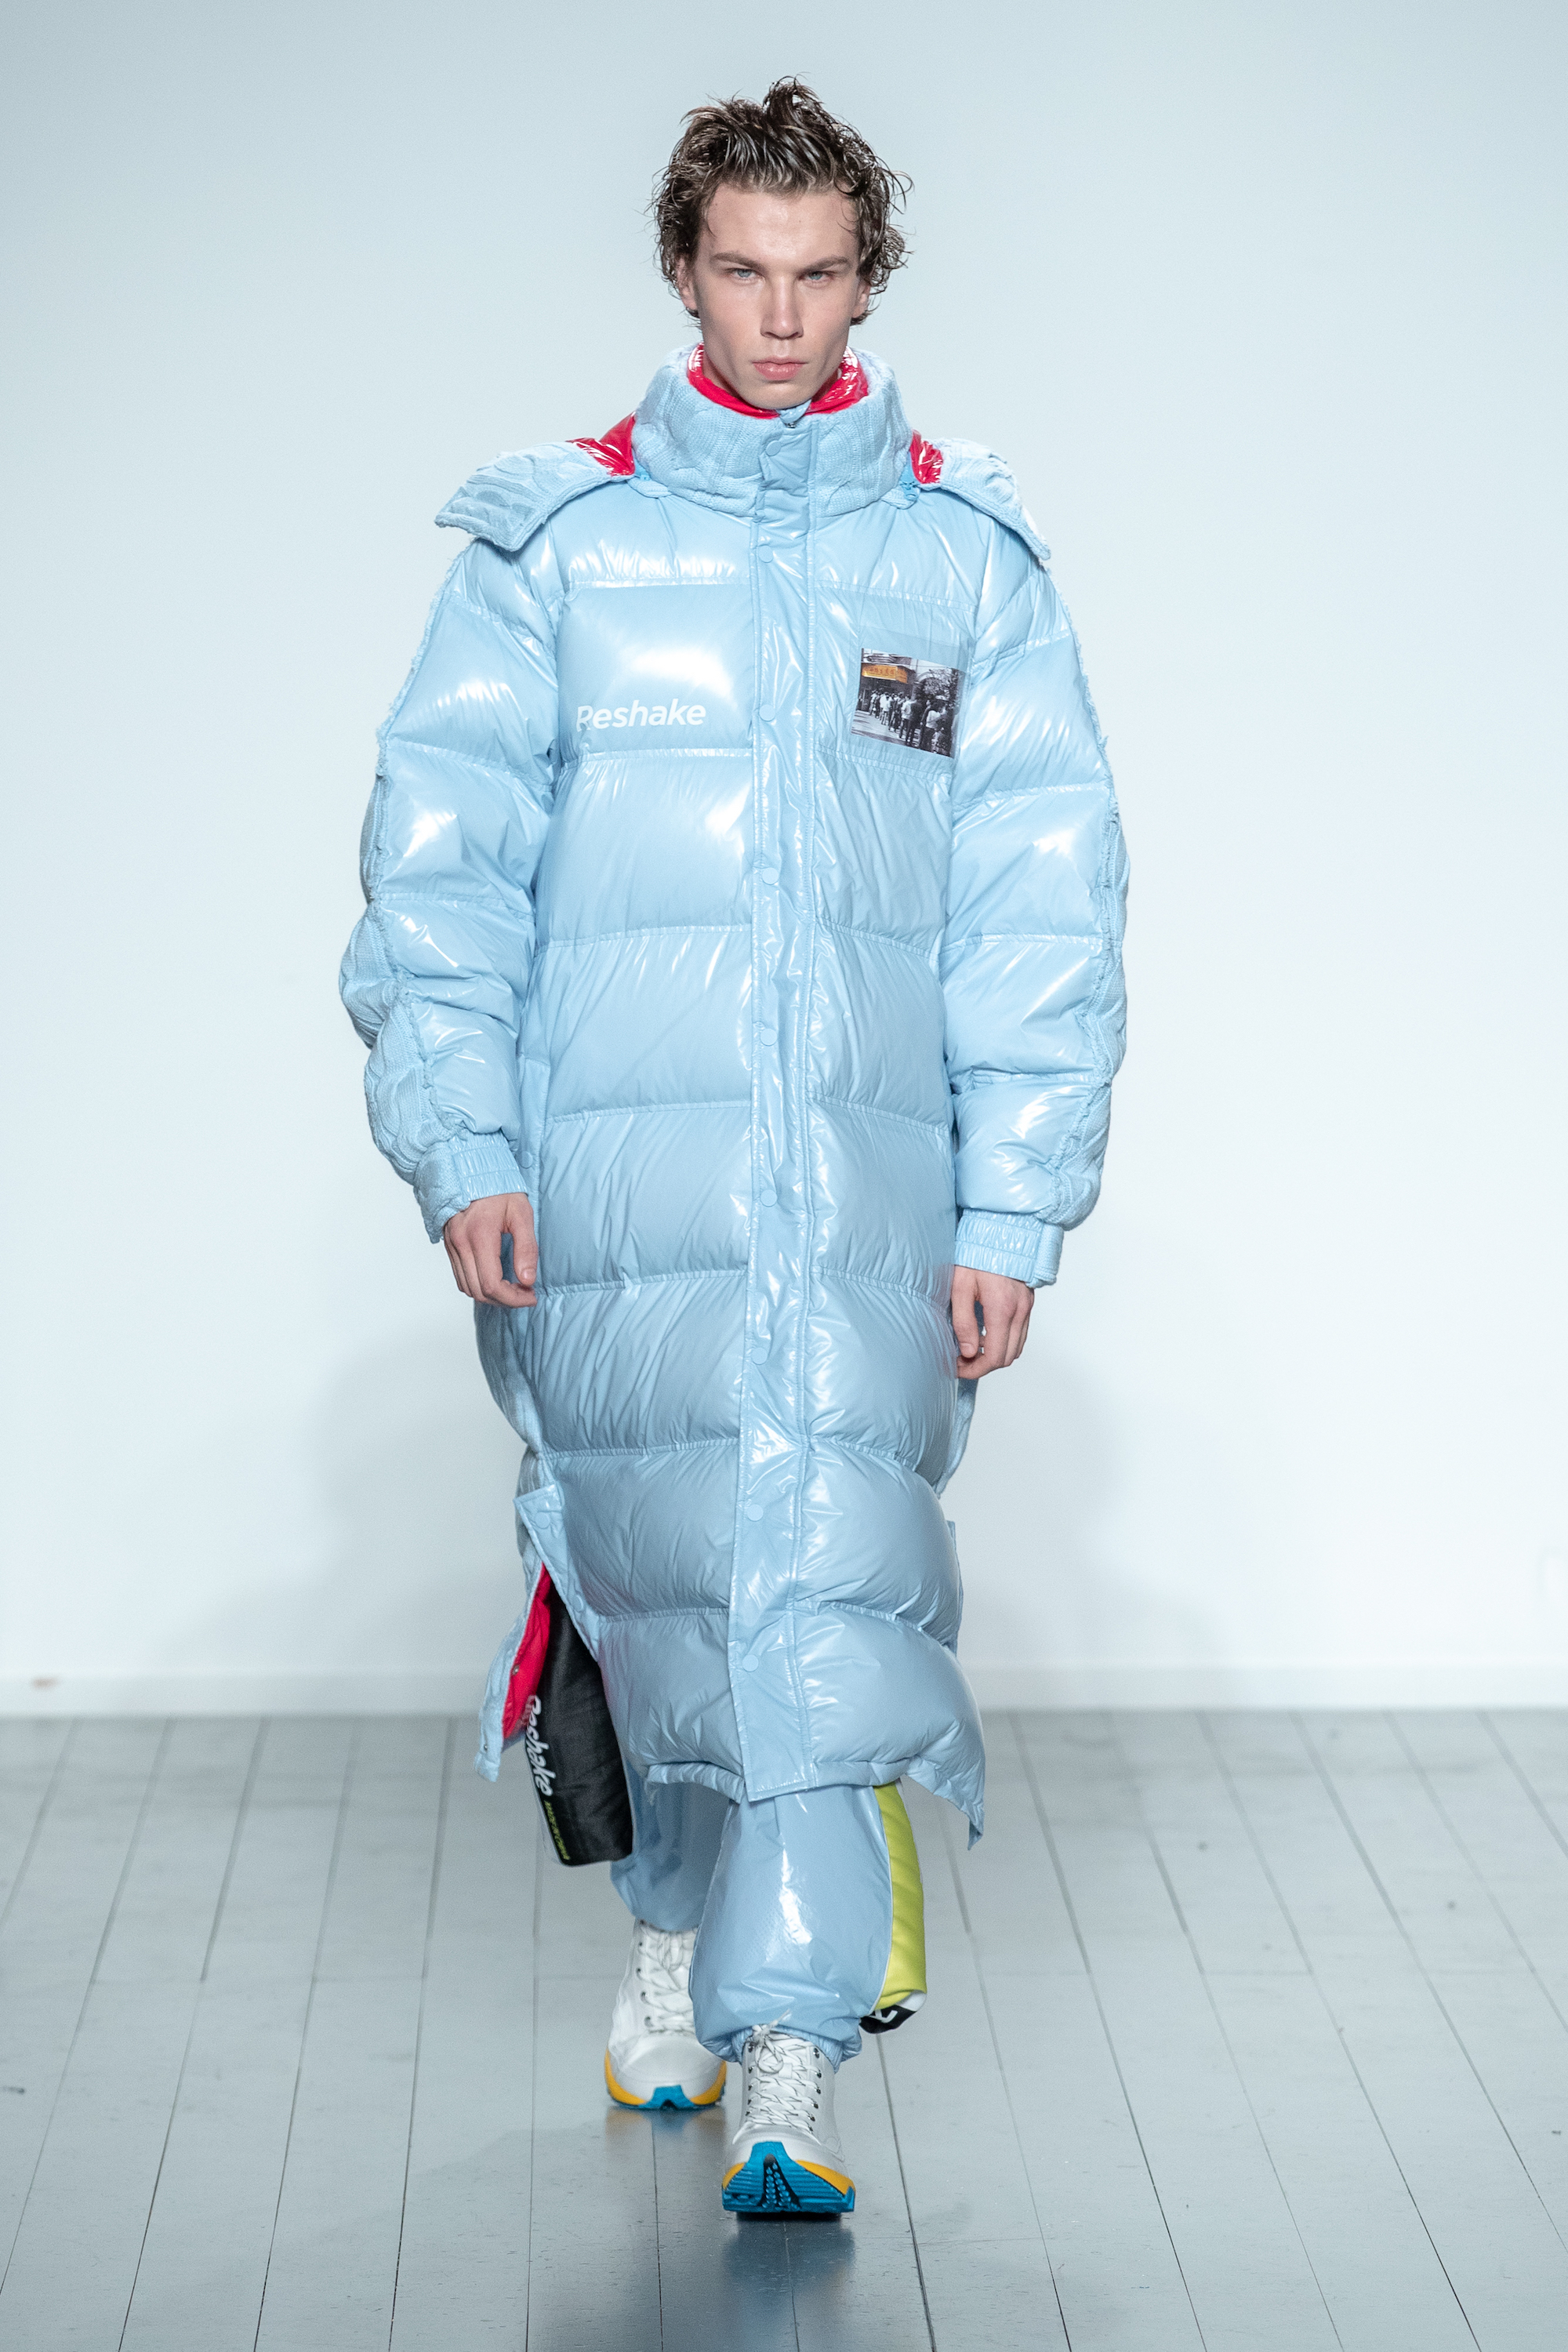 London Fashion Week Autumn Winter 2019 - On|Off Reshake blue puffer